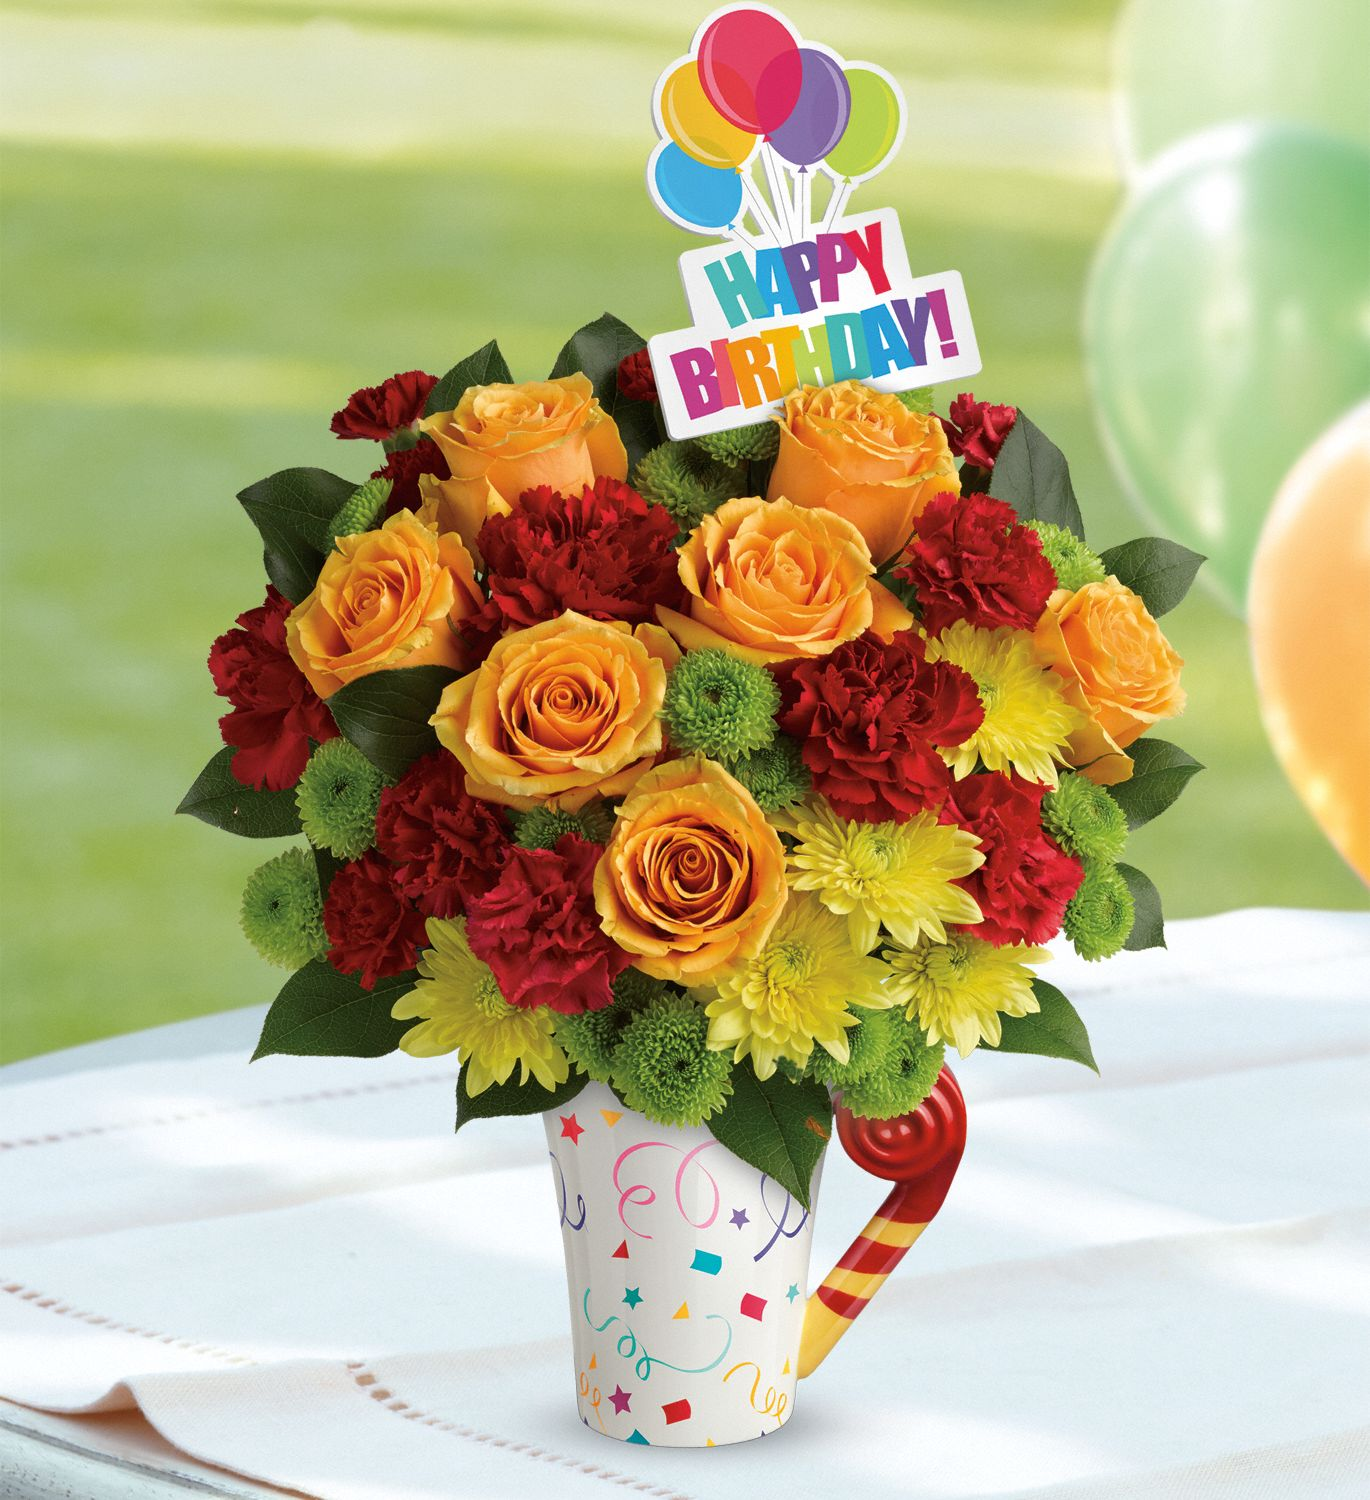 Teleflora's Fun 'n Festive Birthday Bouquet with red carnations